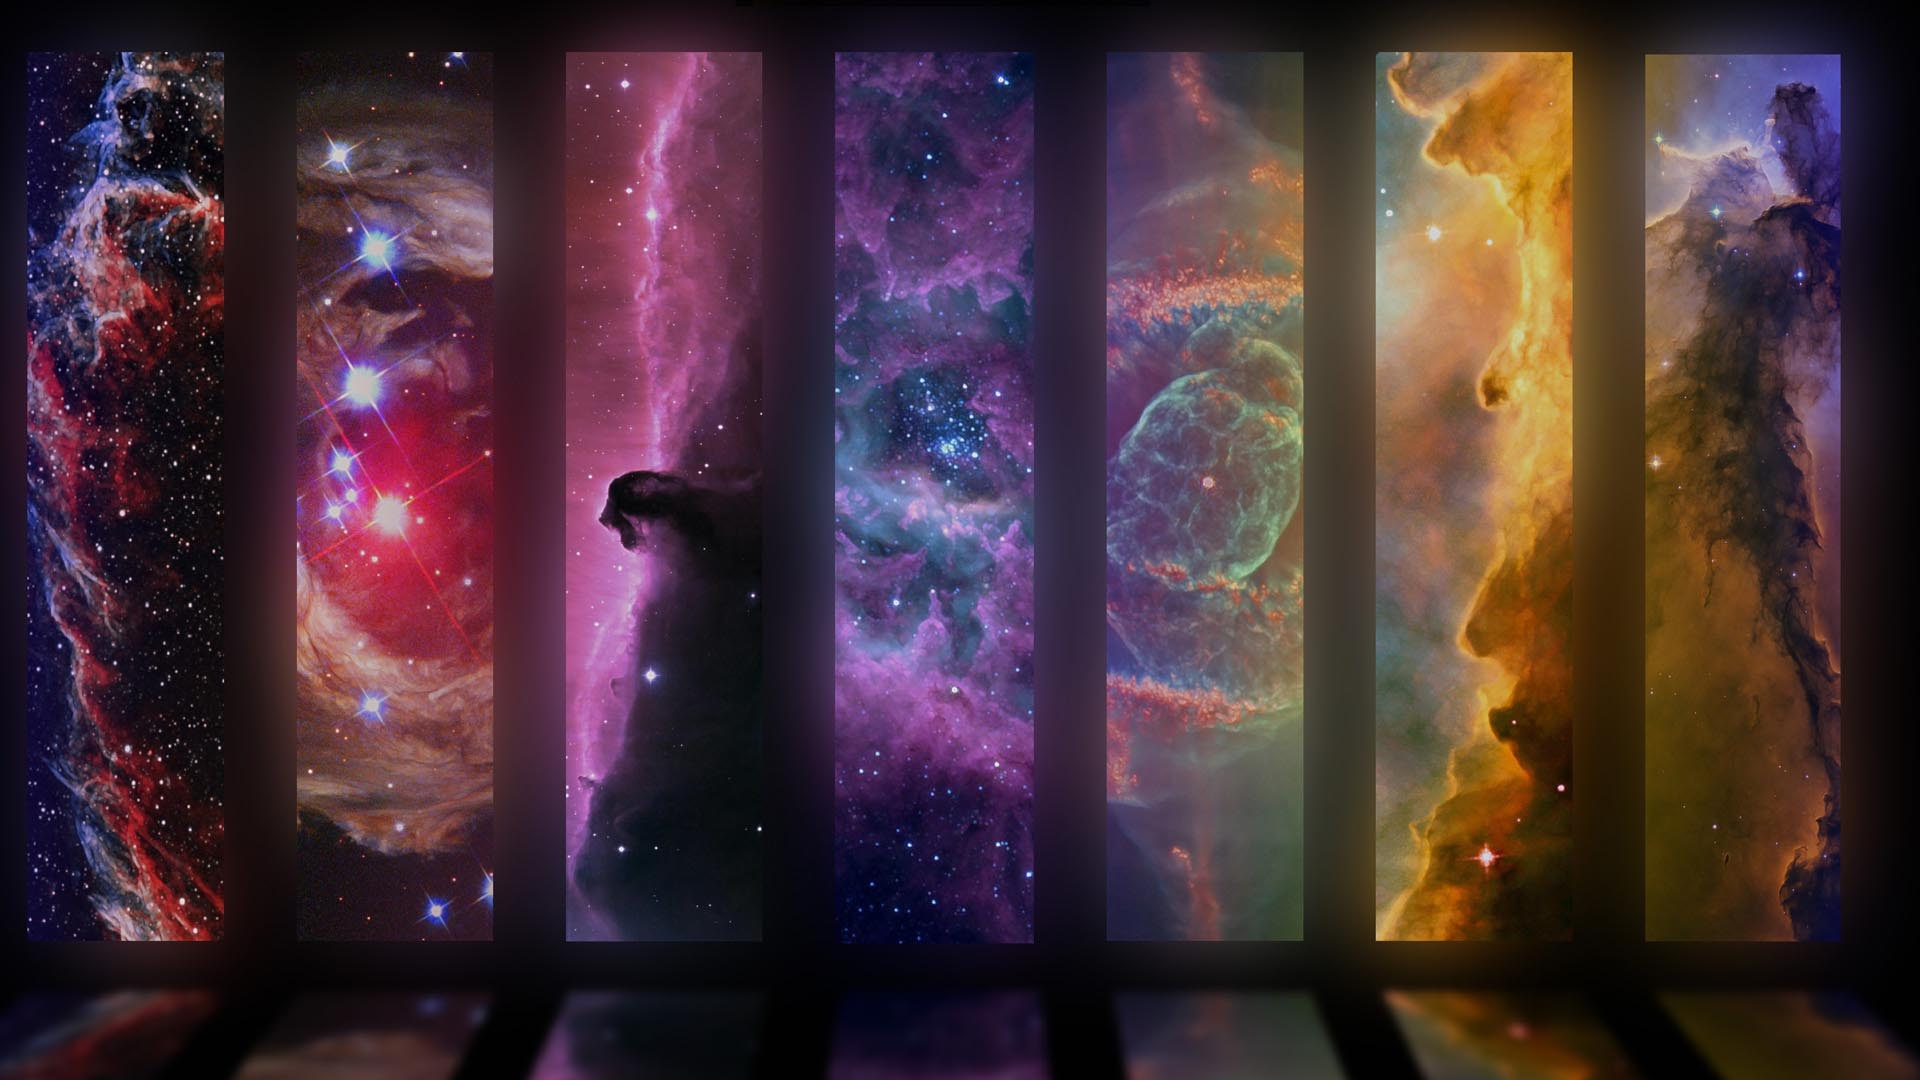 Full Hd Space Wallpapers - Full Hd Wallpapers Space , HD Wallpaper & Backgrounds